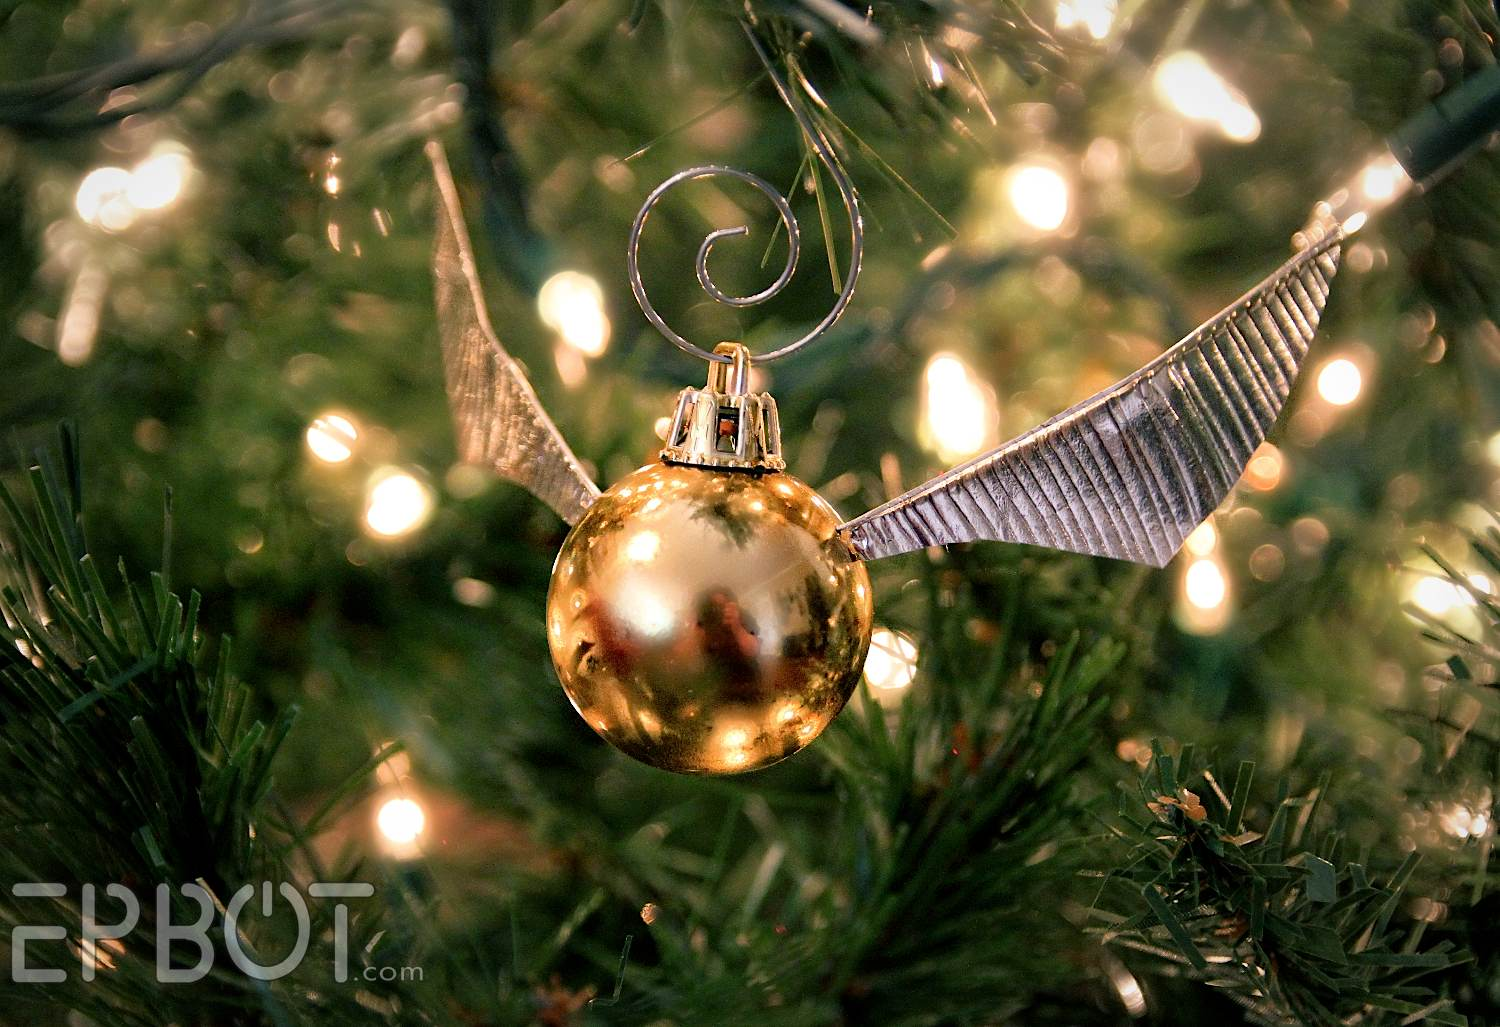 Harry potter christmas ornament - Make Your Own Golden Snitch Ornaments Calling All Harry Potter